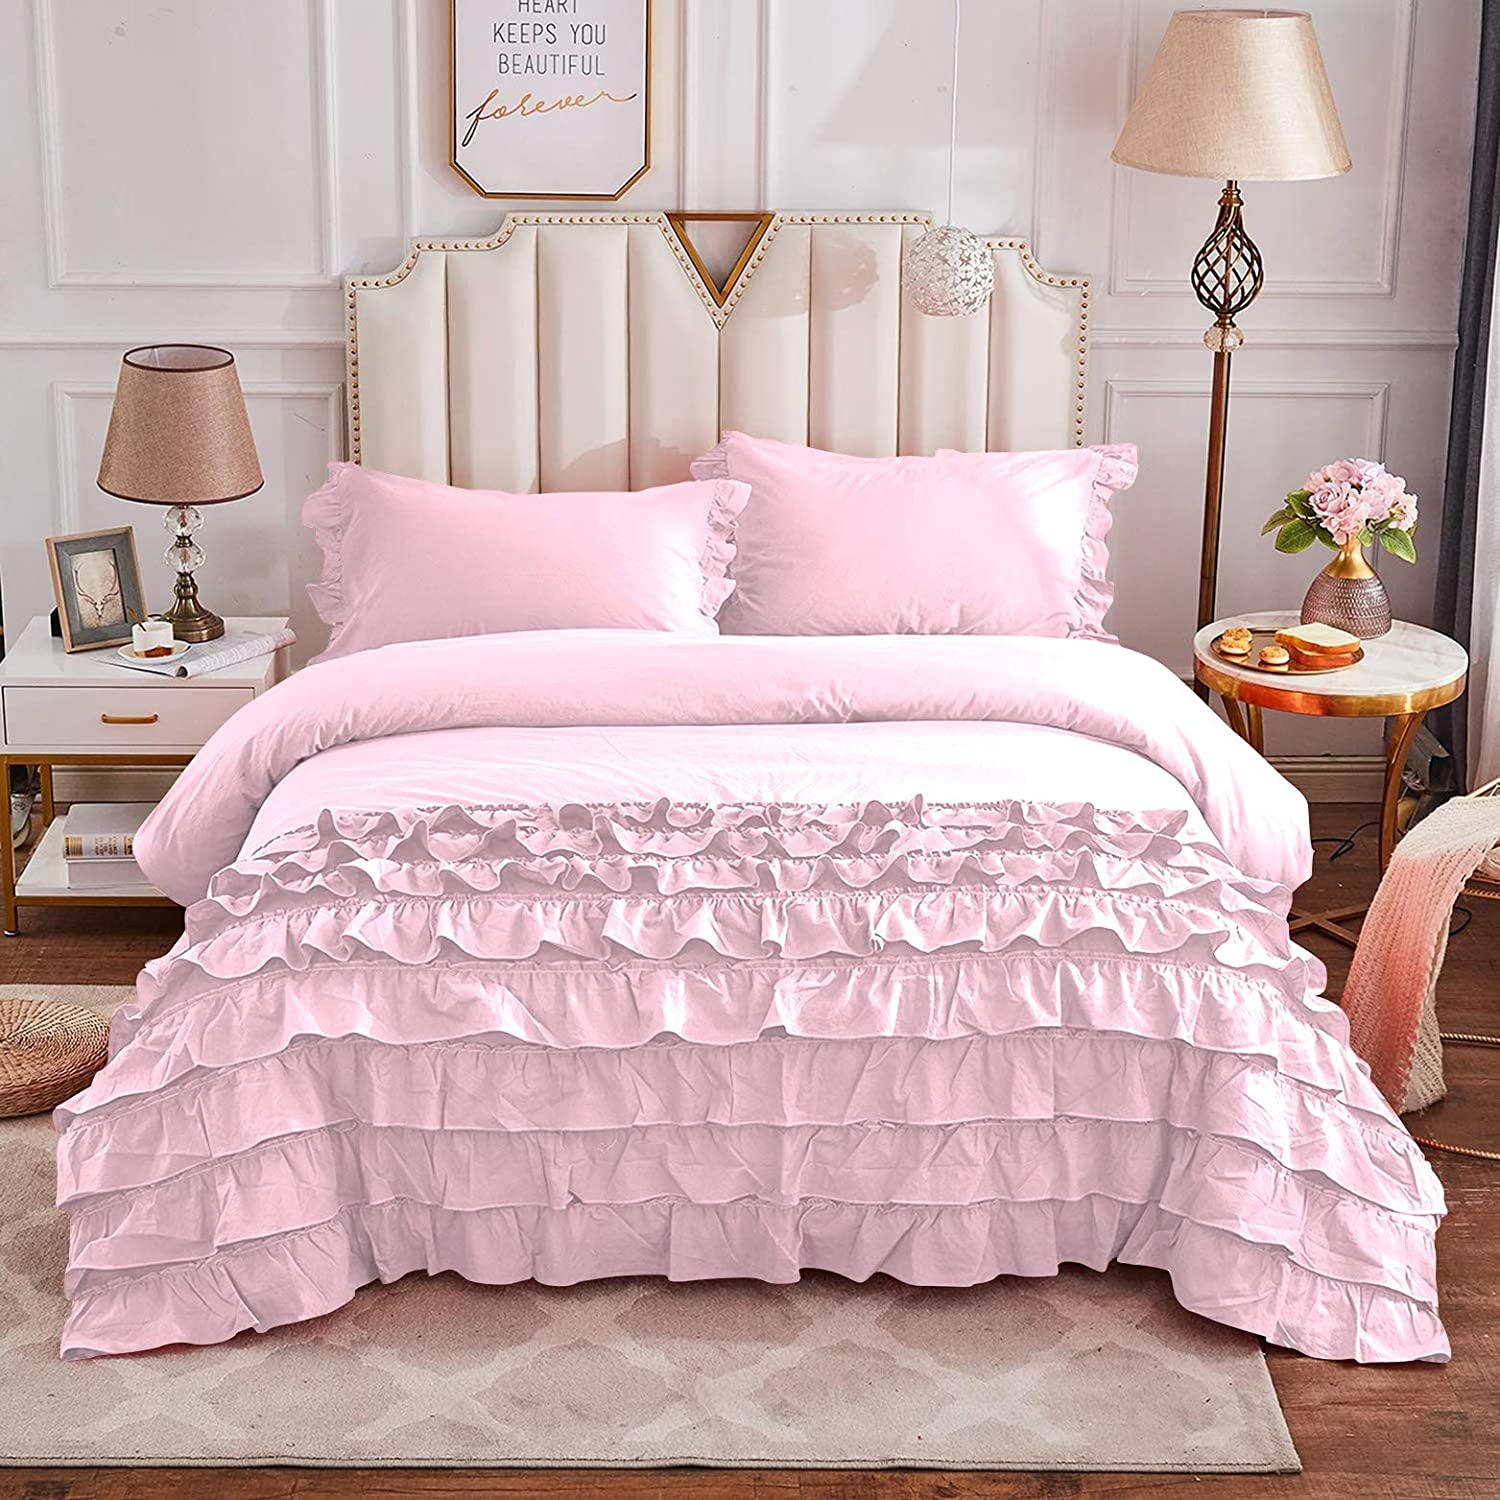 Fabricom Twin lowest price Twin-XL Size Vintage Outstanding 1Pc Bedding Cut Girls Ruffled